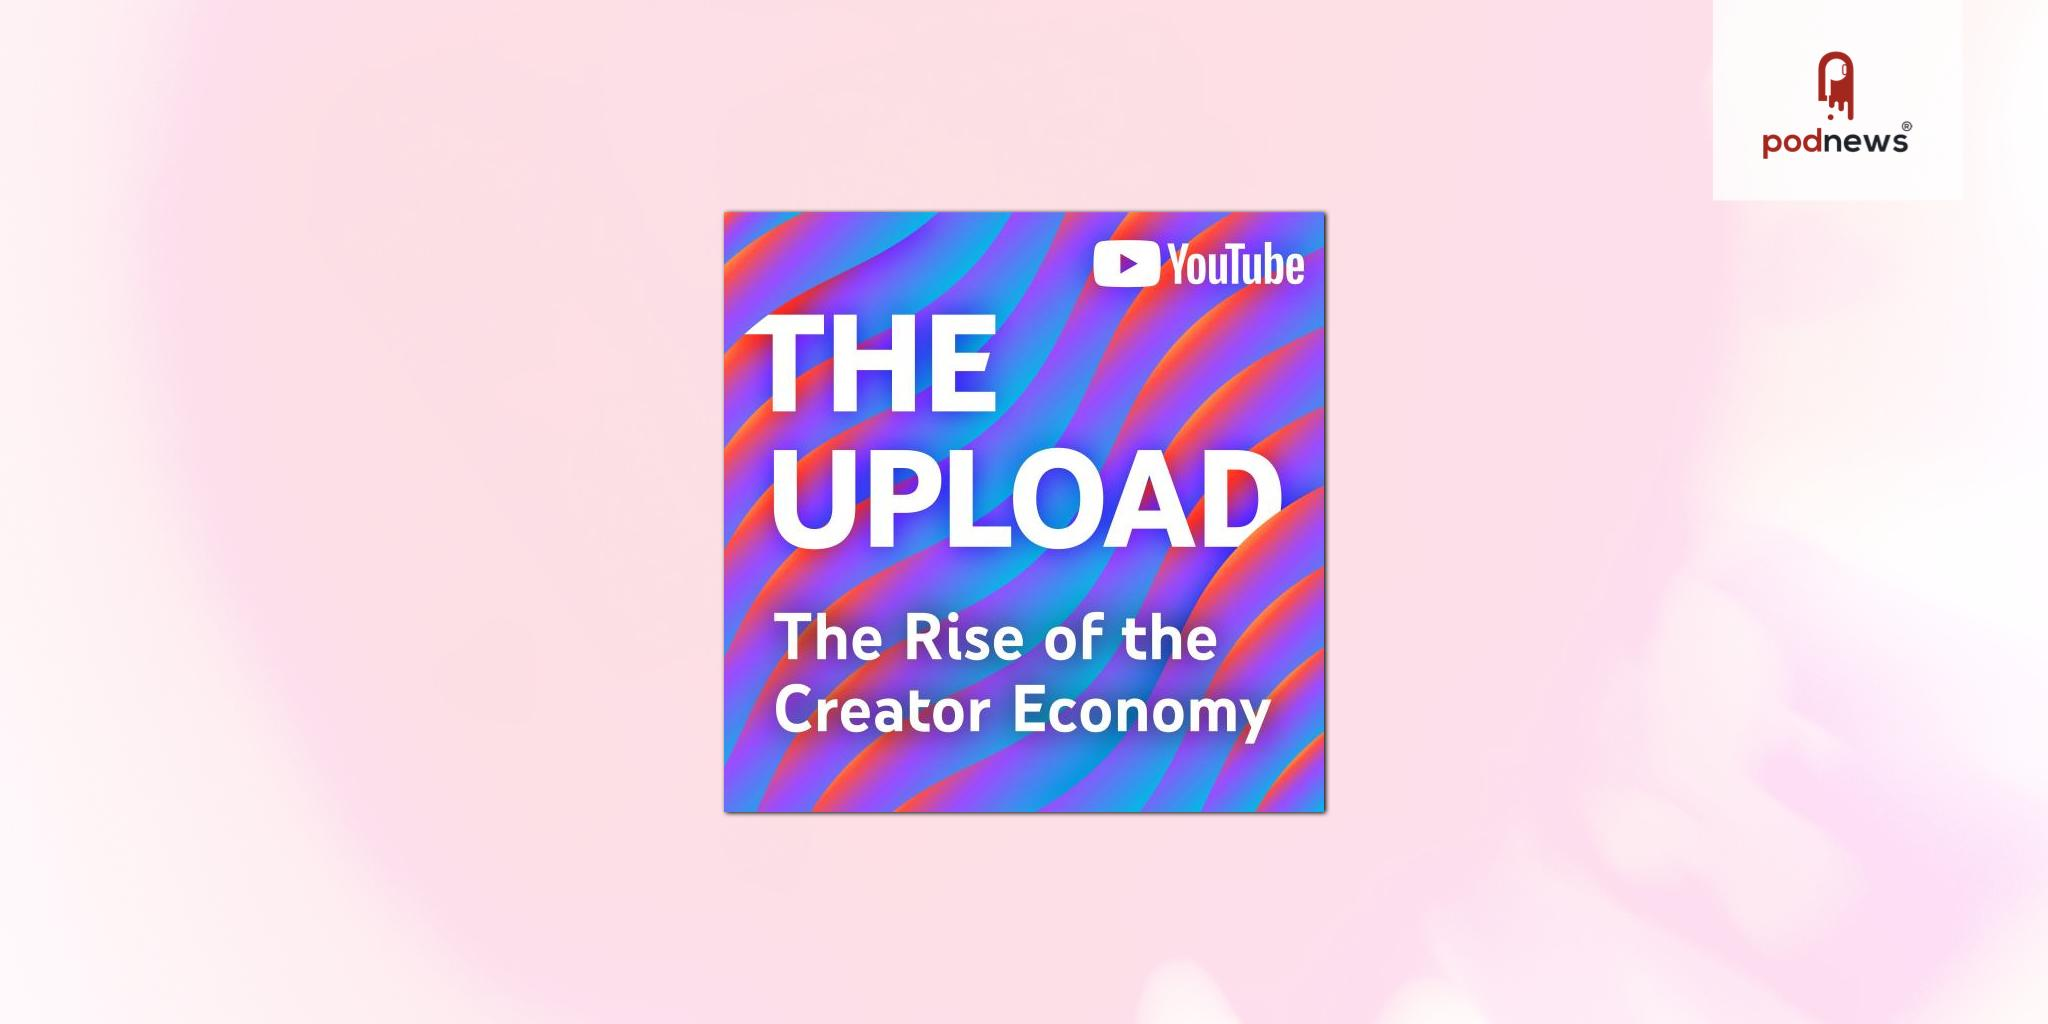 YouTube and National Public Media Announce Custom Podcast The Upload: The Rise of the Creator Economy